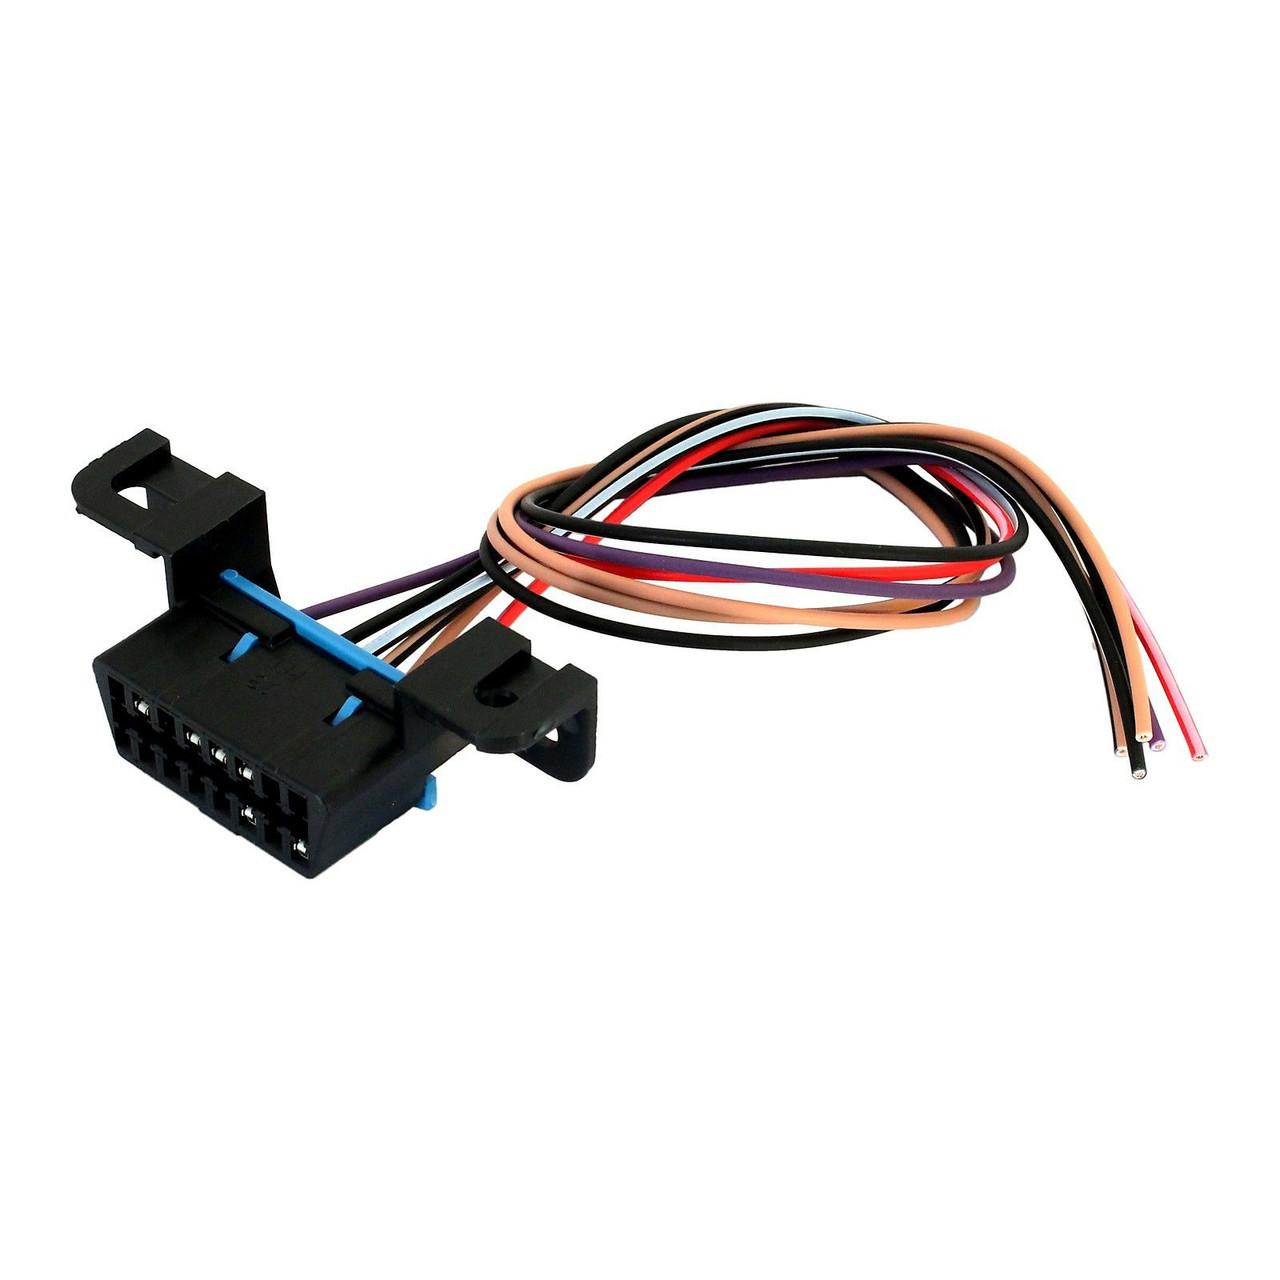 hight resolution of obdii obd2 j1962 class 2 can bus wiring harness connector pigtail car stereo wiring harness do come with connectors wiring harnesses